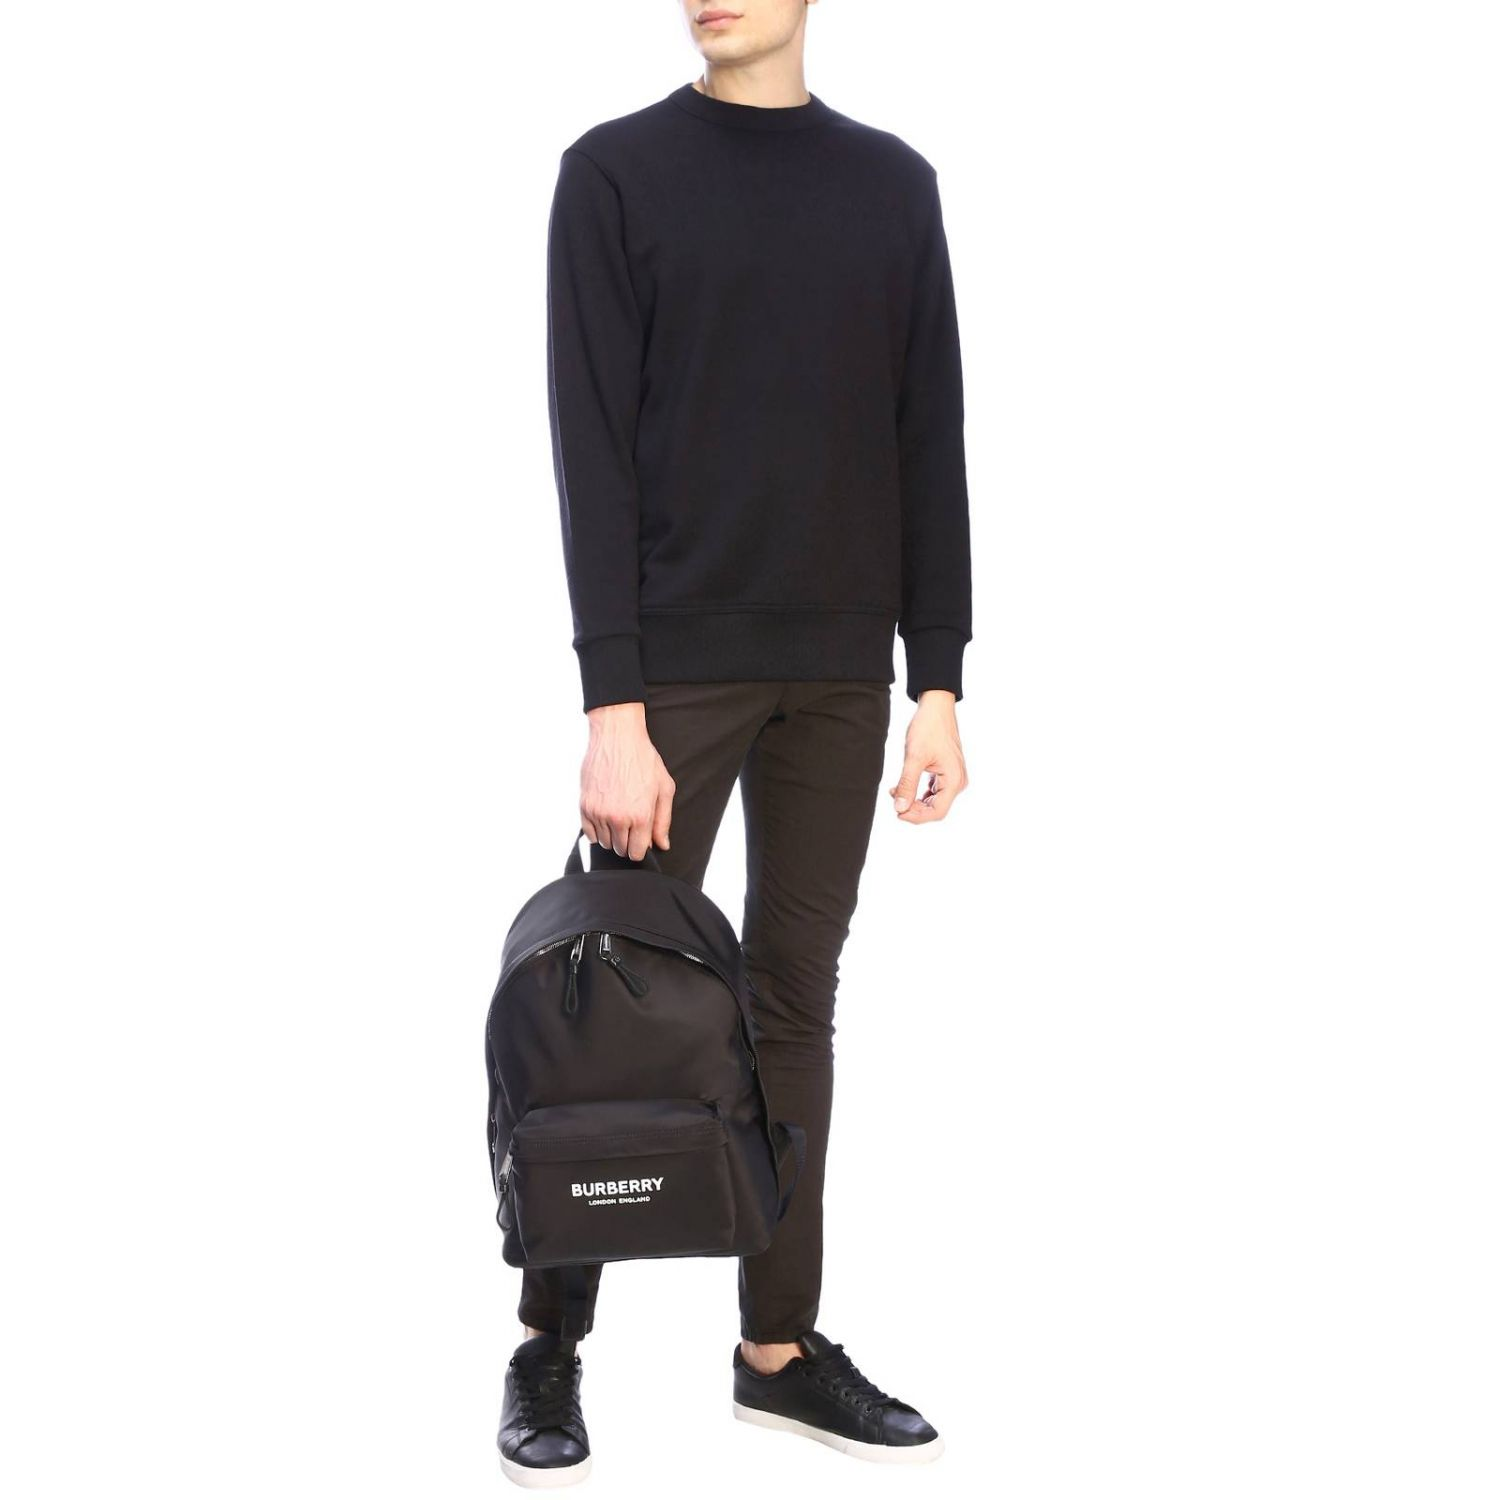 Crewneck sweatshirt with maxi back Burberry lettering and zip black 2